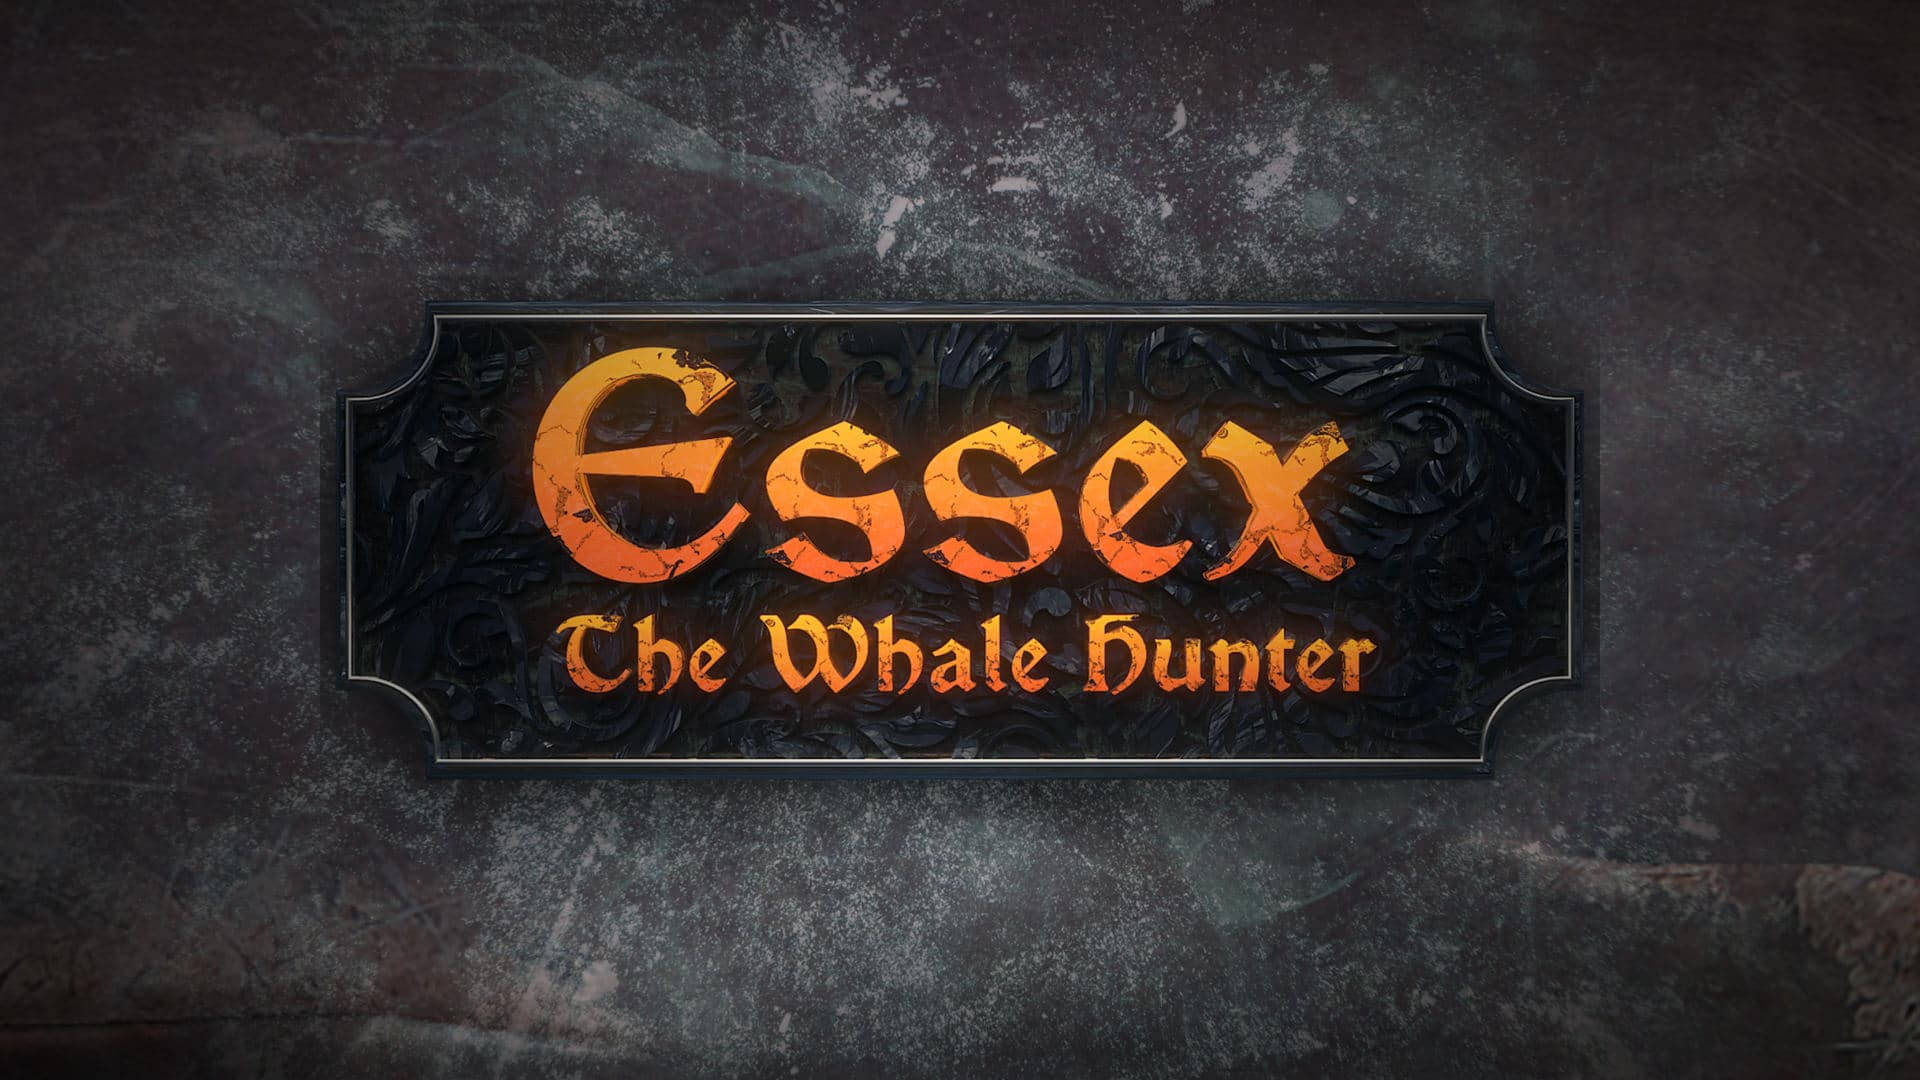 Essex The Whale Hunter